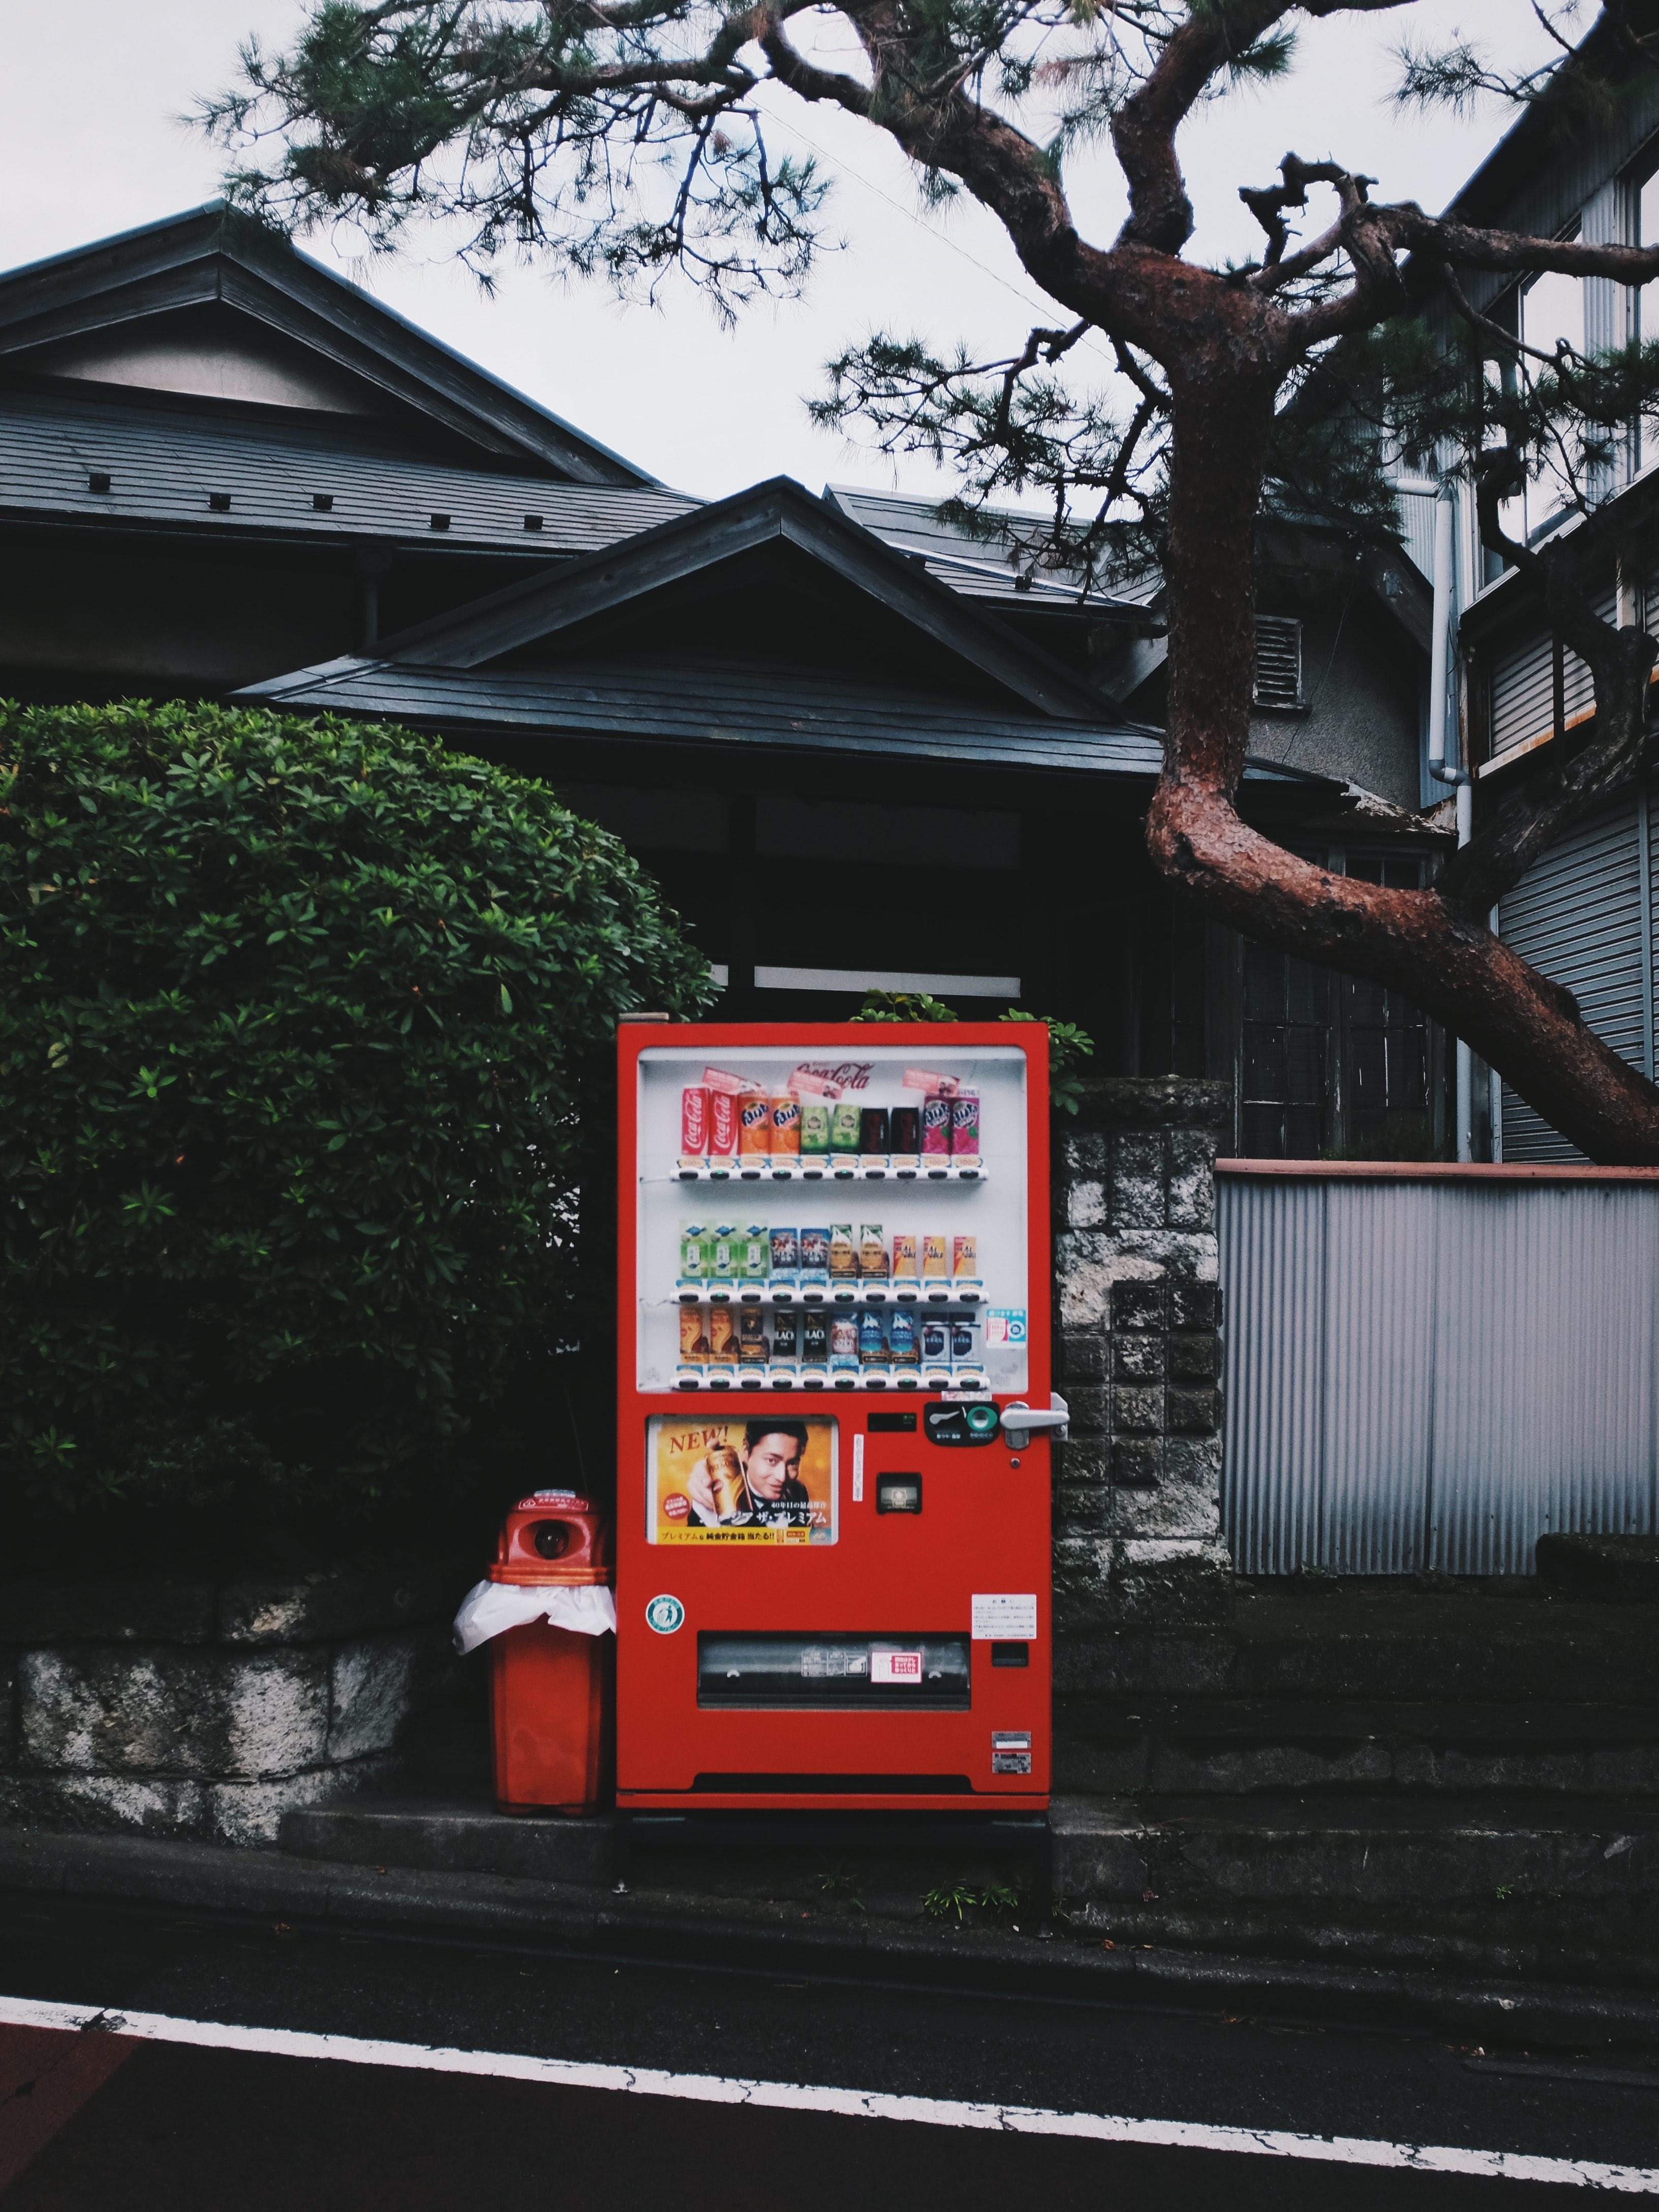 red vending machine beside red plastic trash can